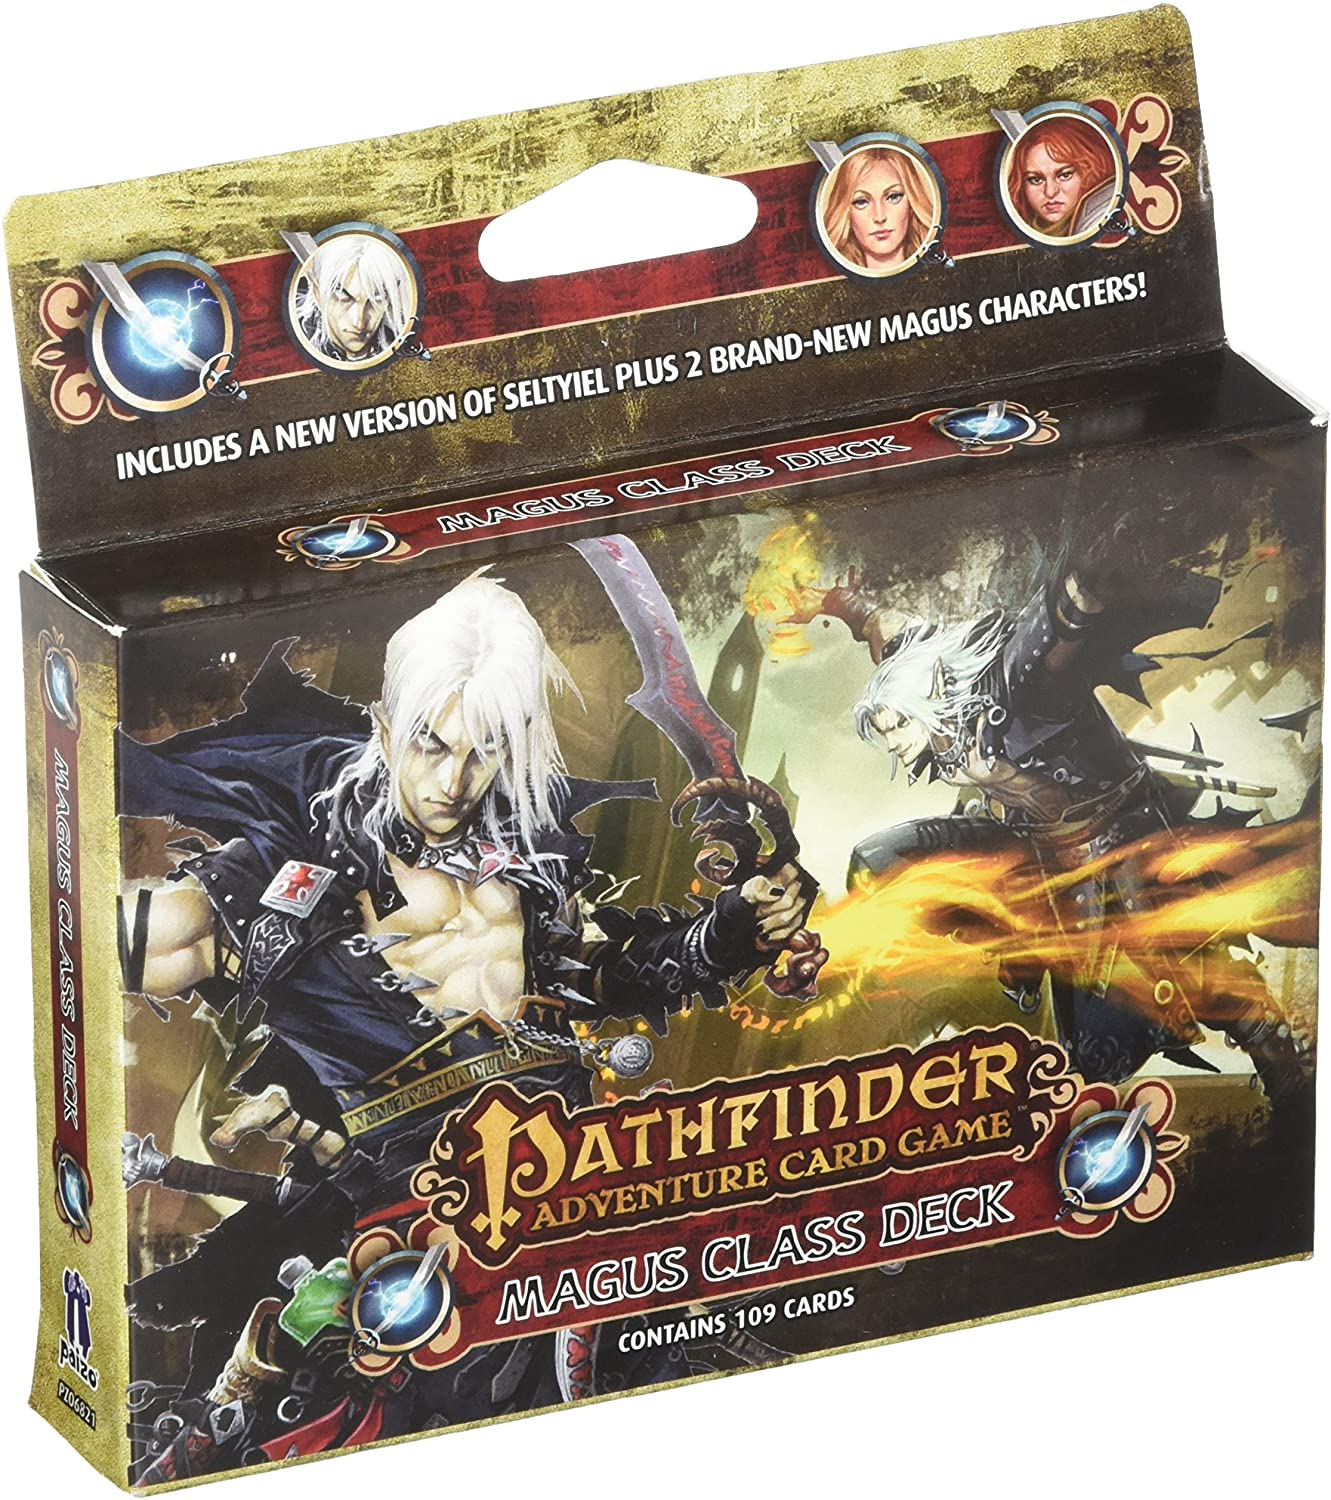 Image of Pathfinder Adventure Card Game: Magus Class Deck